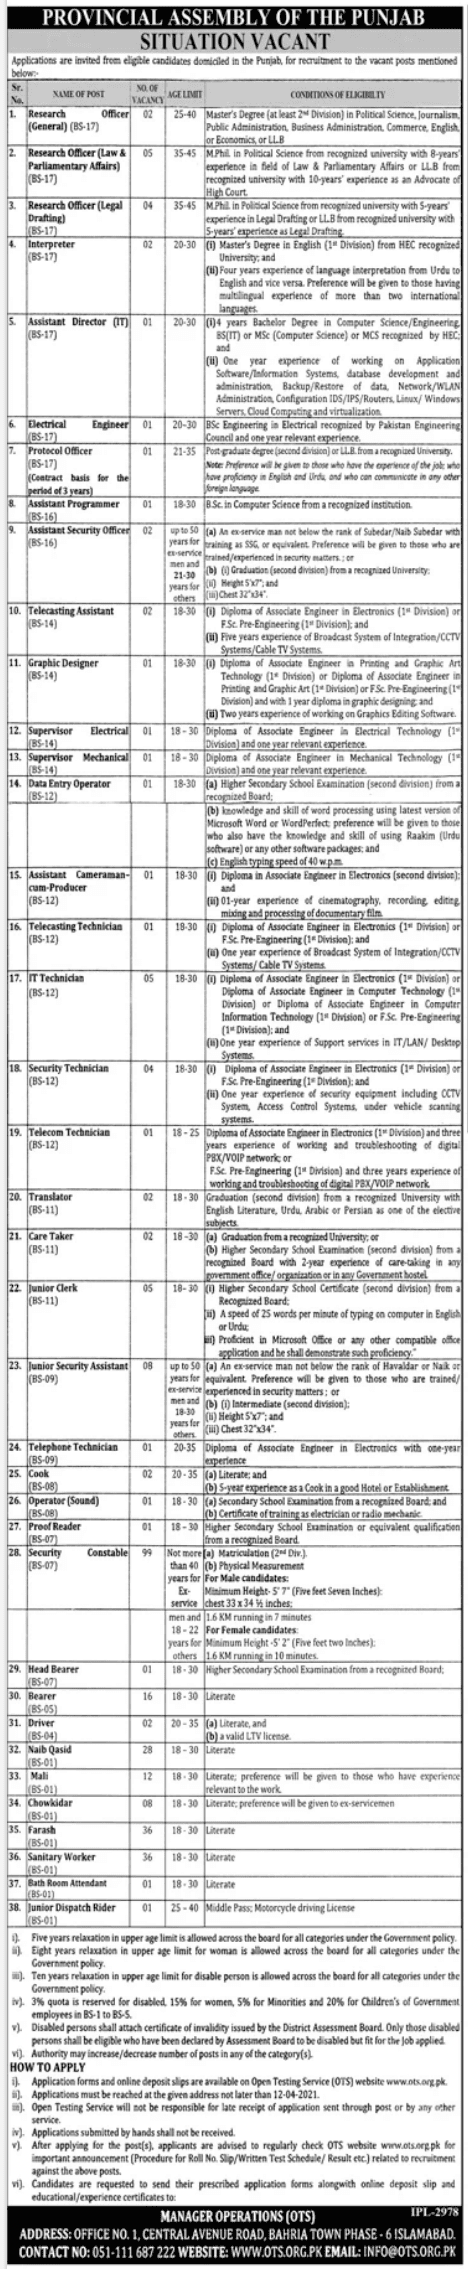 Latest Provincial Assembly of the Punjab Jobs